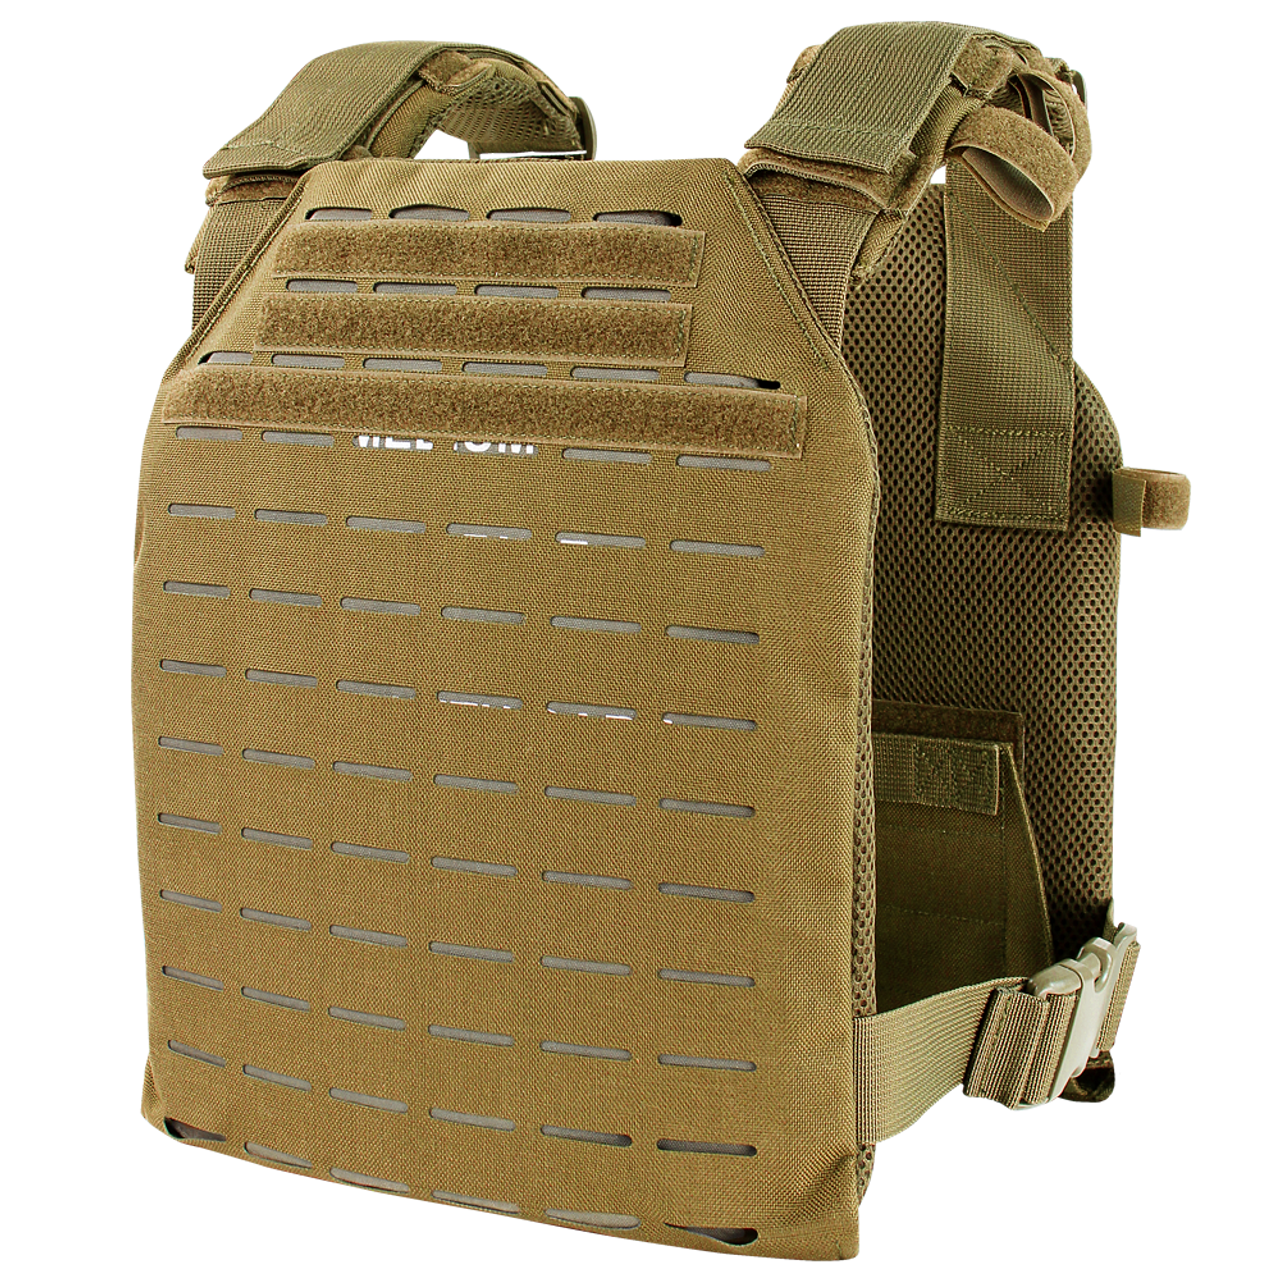 Condor Lcs Sentry Plate Carrier Coyote Brown Amped